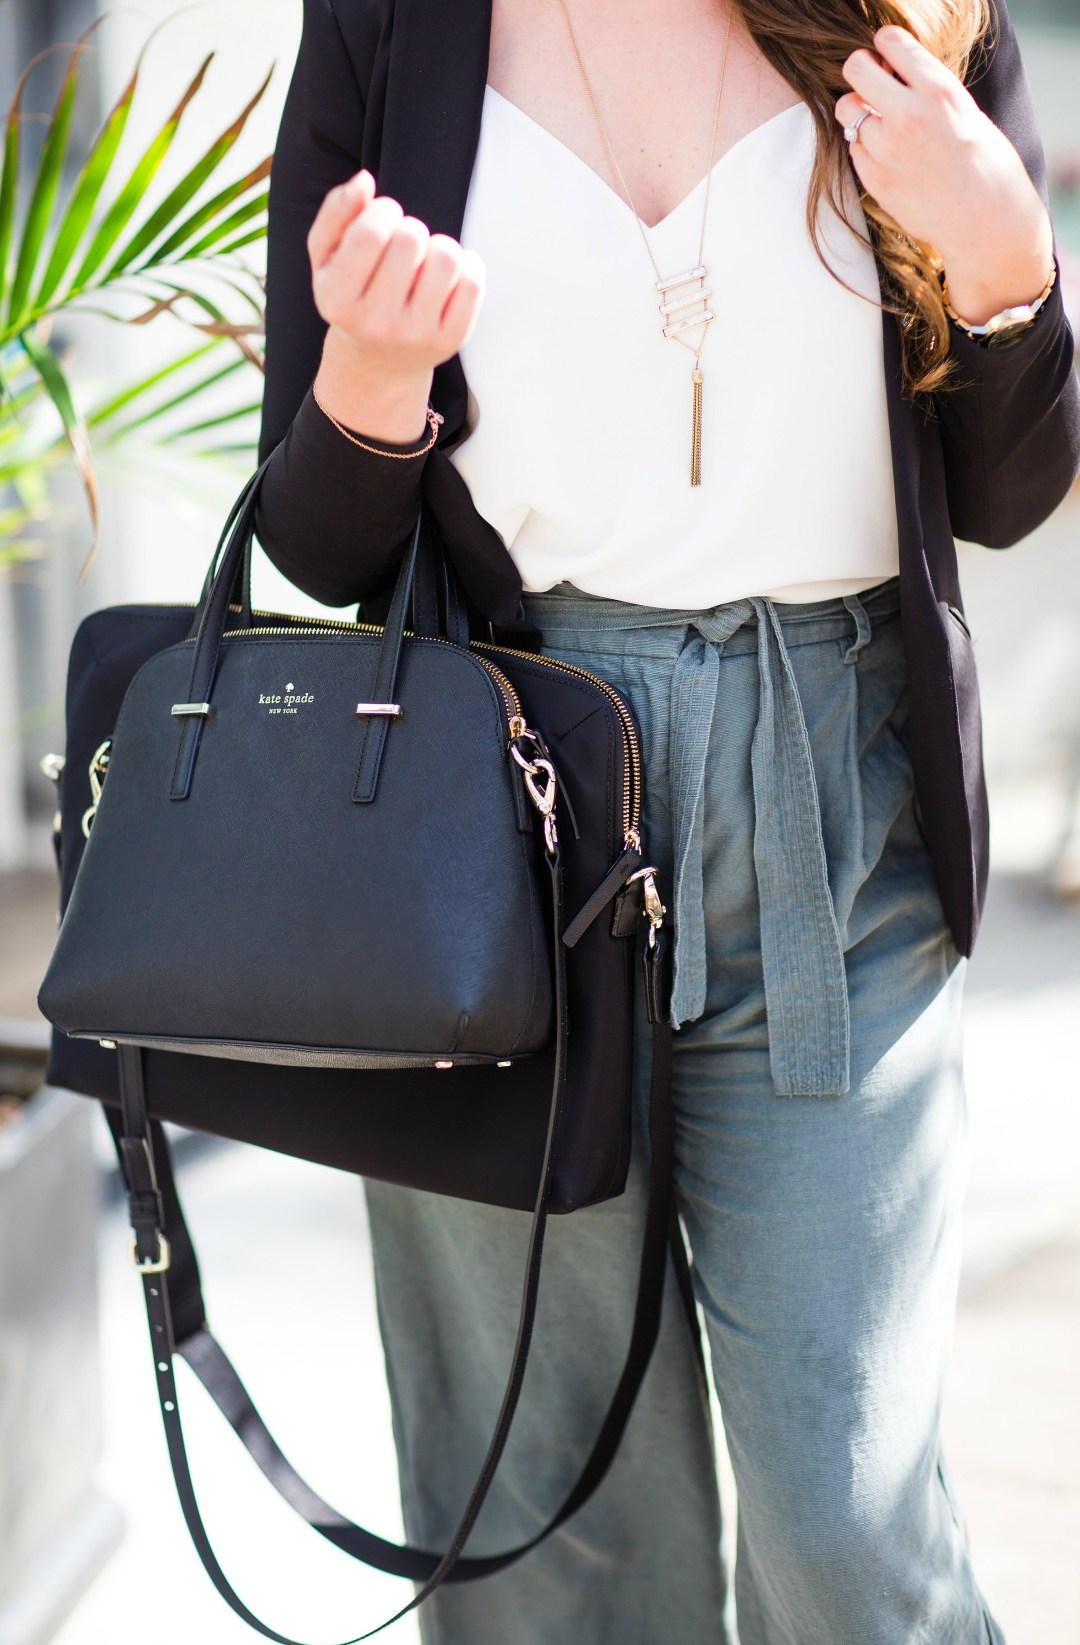 working-girl-office-outfit-wide-leg-pants-black-blazer-celine-sunglasses-kate-spade-laptop-bag-rosecitystyleguide-canadian-blogger-11